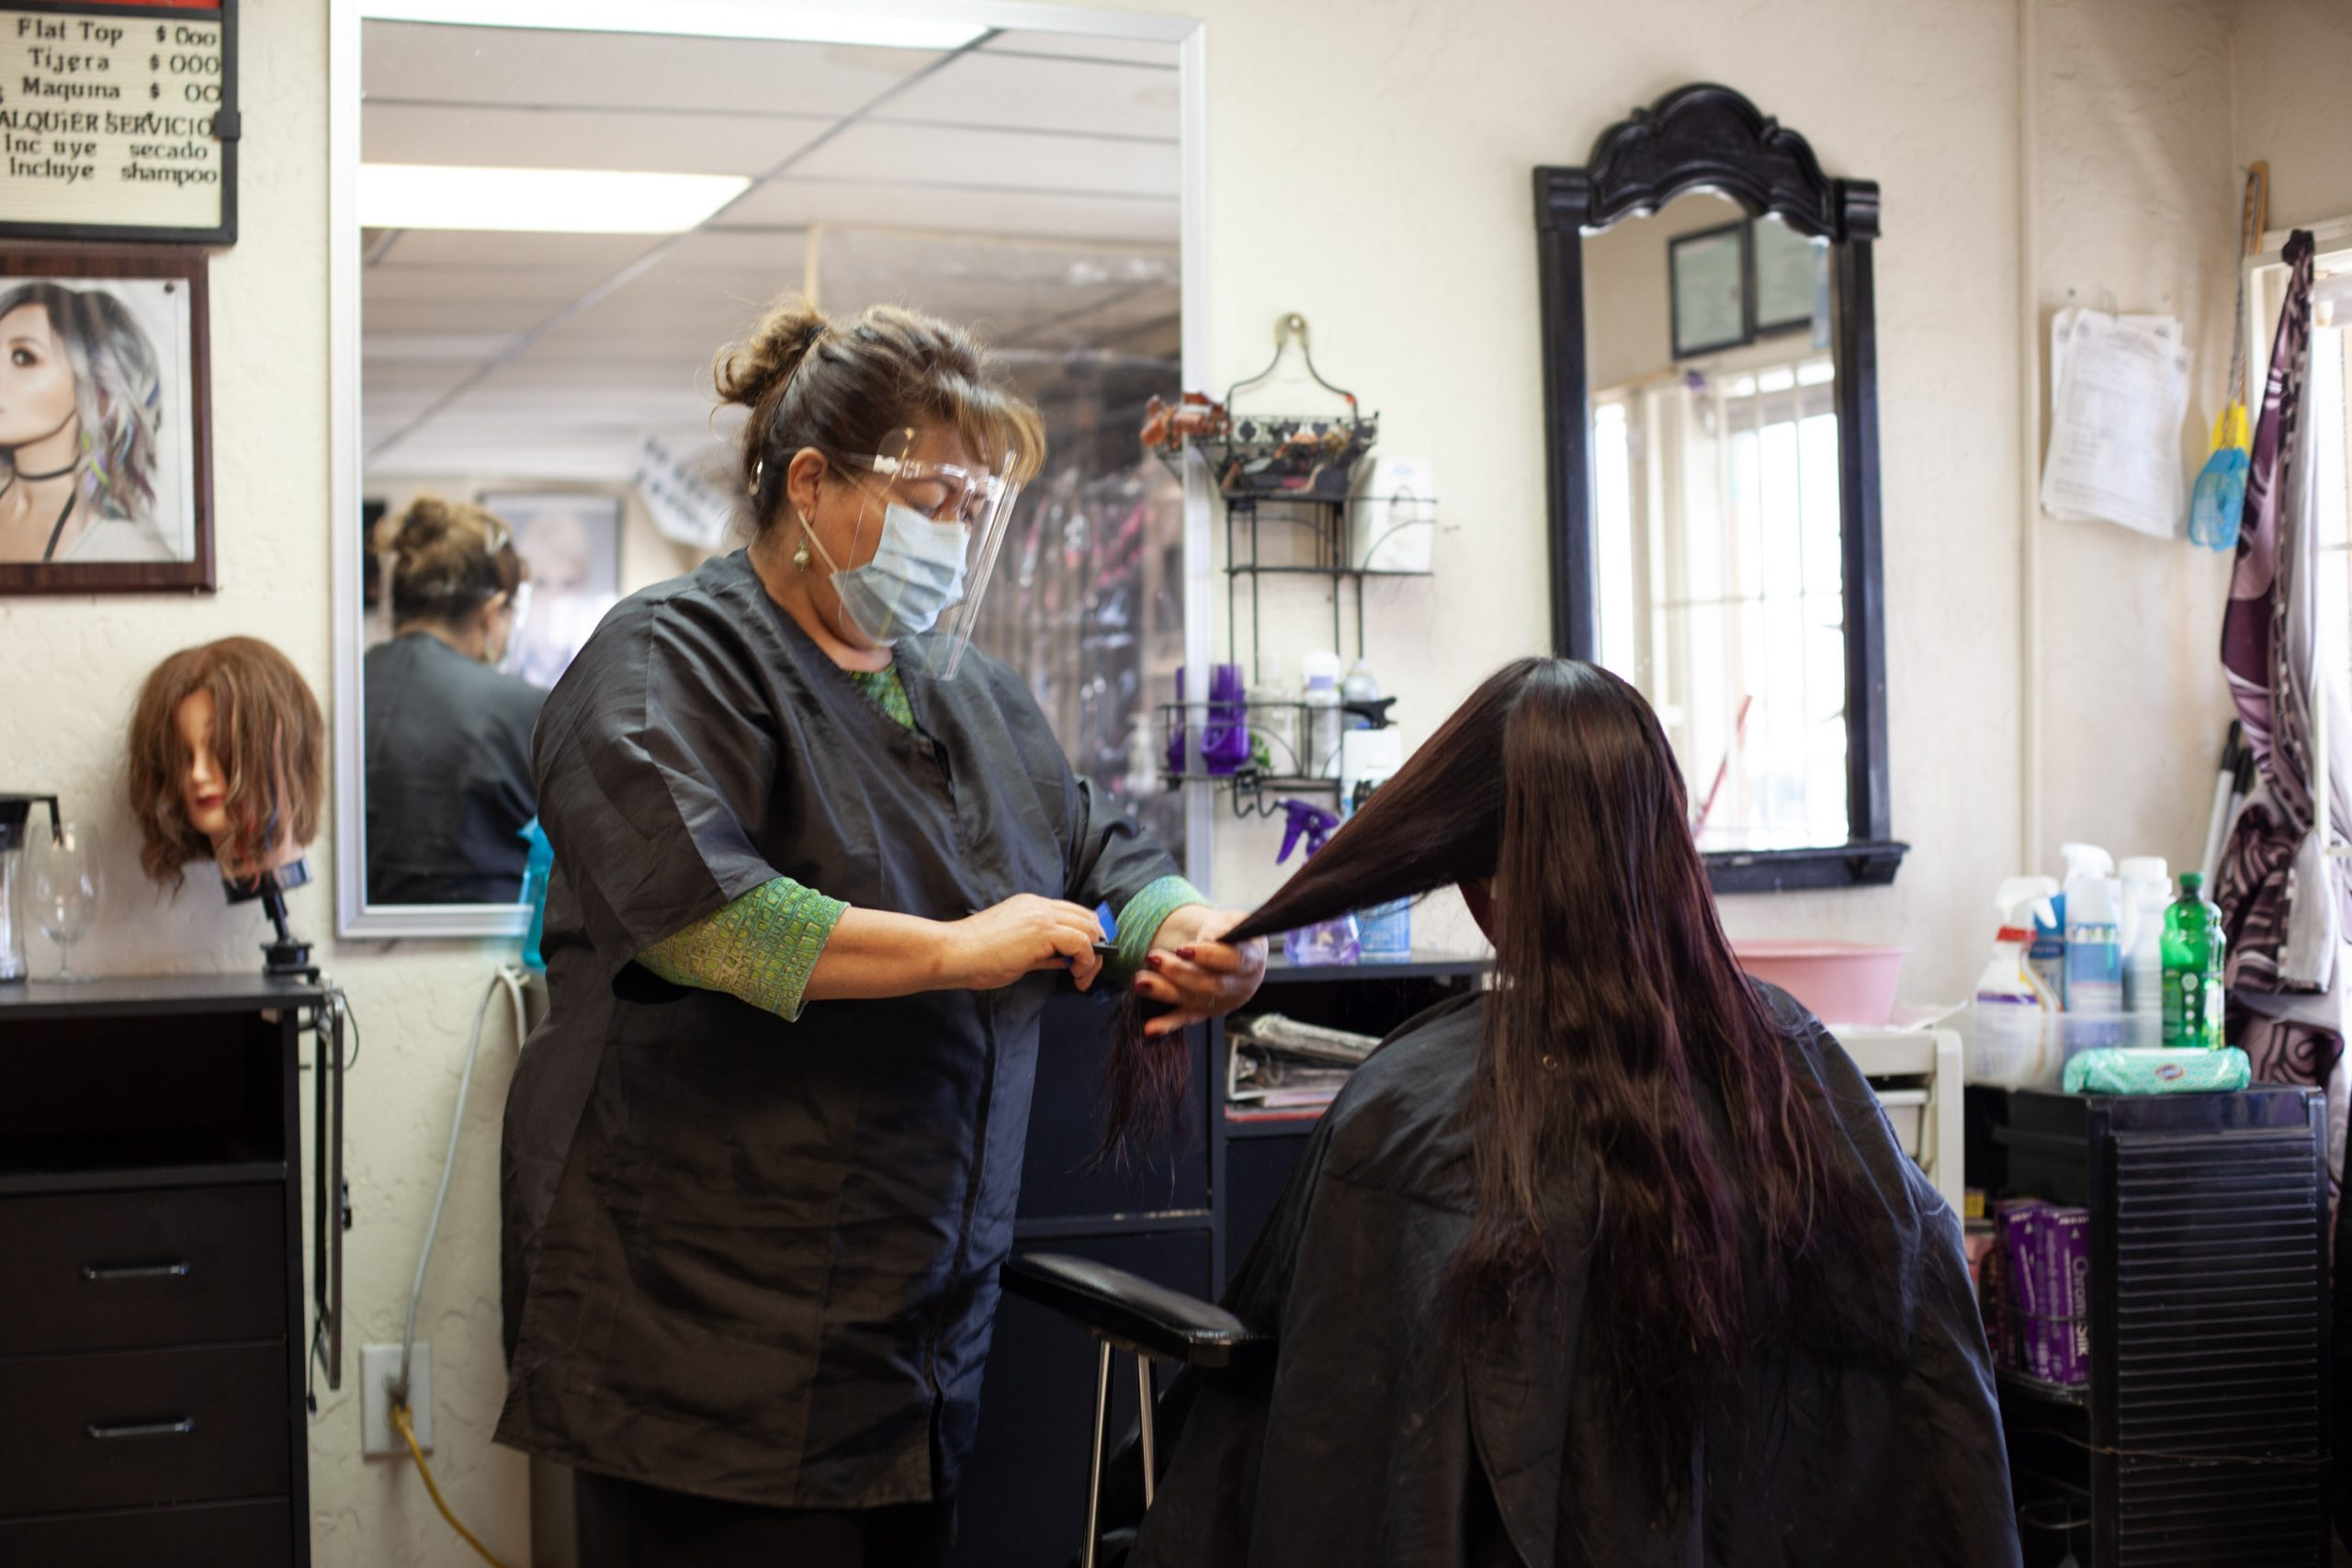 stylist cuts woman's hair in salon